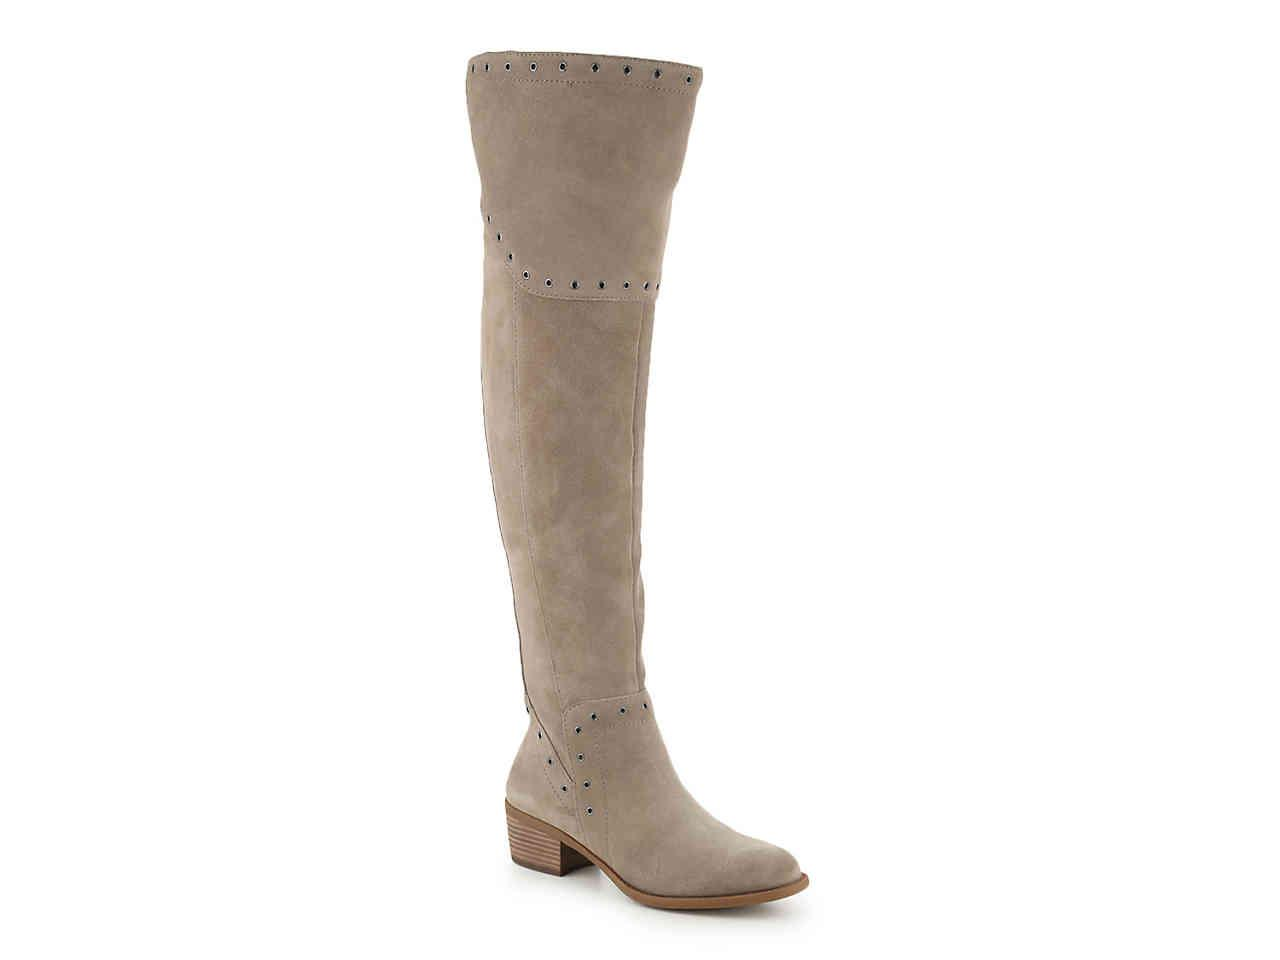 6909db342715 Lyst - Vince Camuto Bestan Over The Knee Boot in Brown